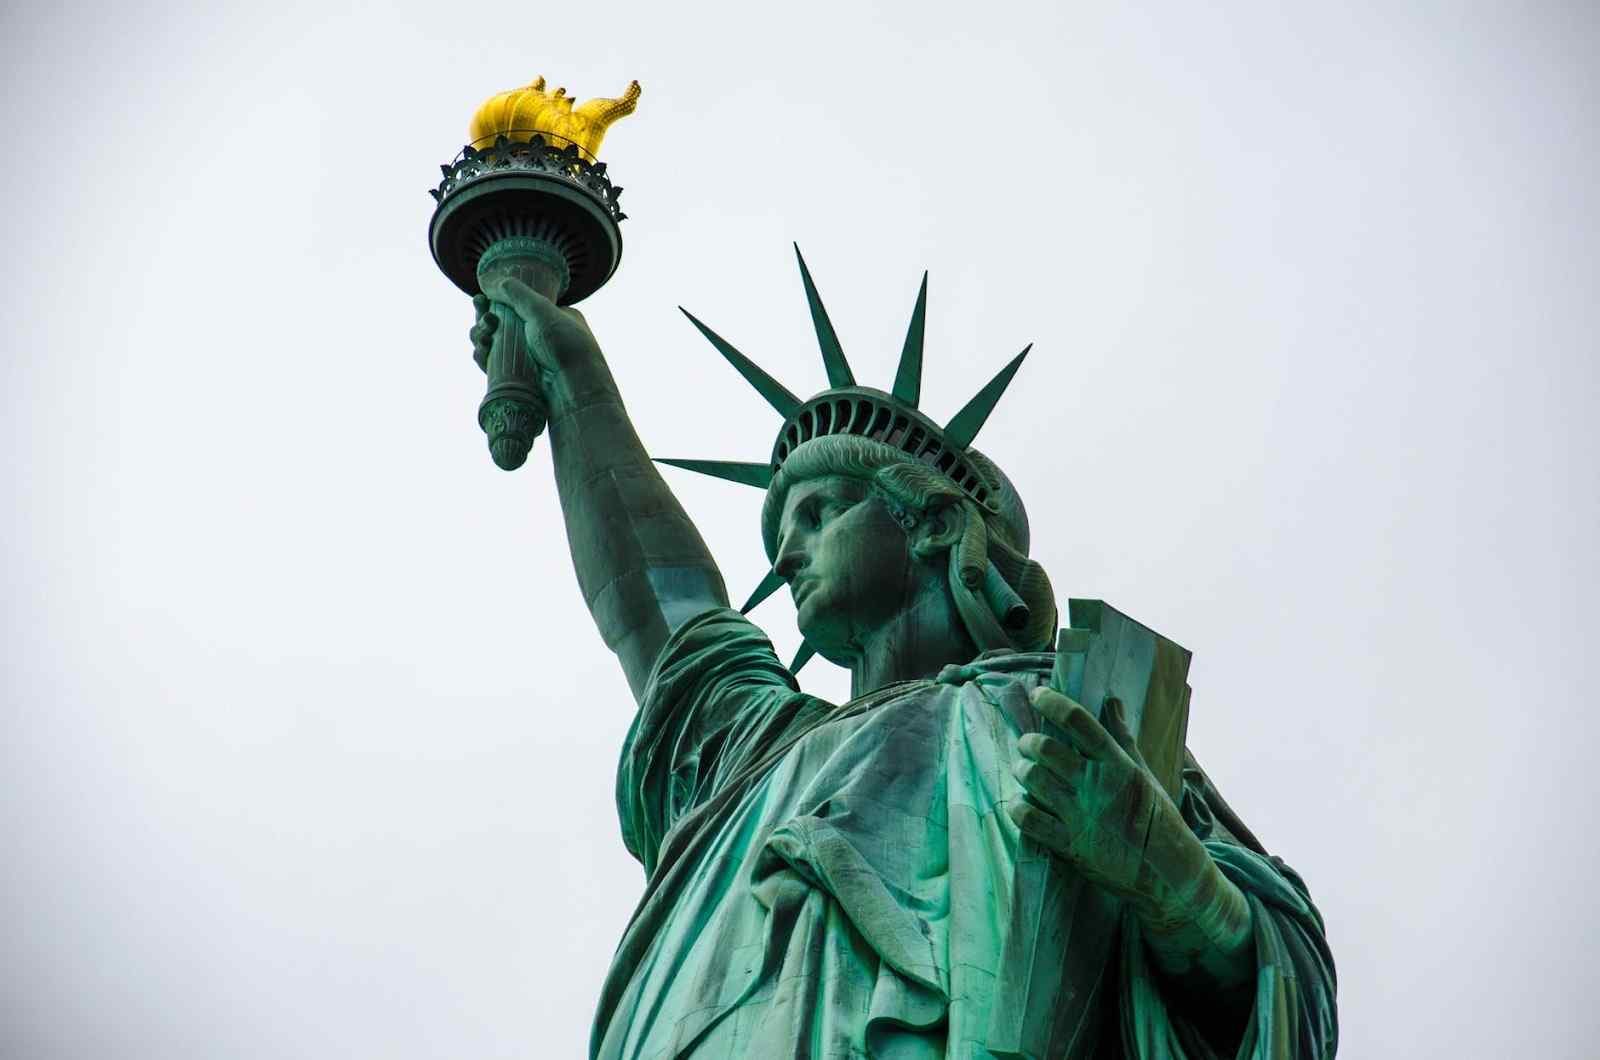 Becoming American: An Immigrant's Journey